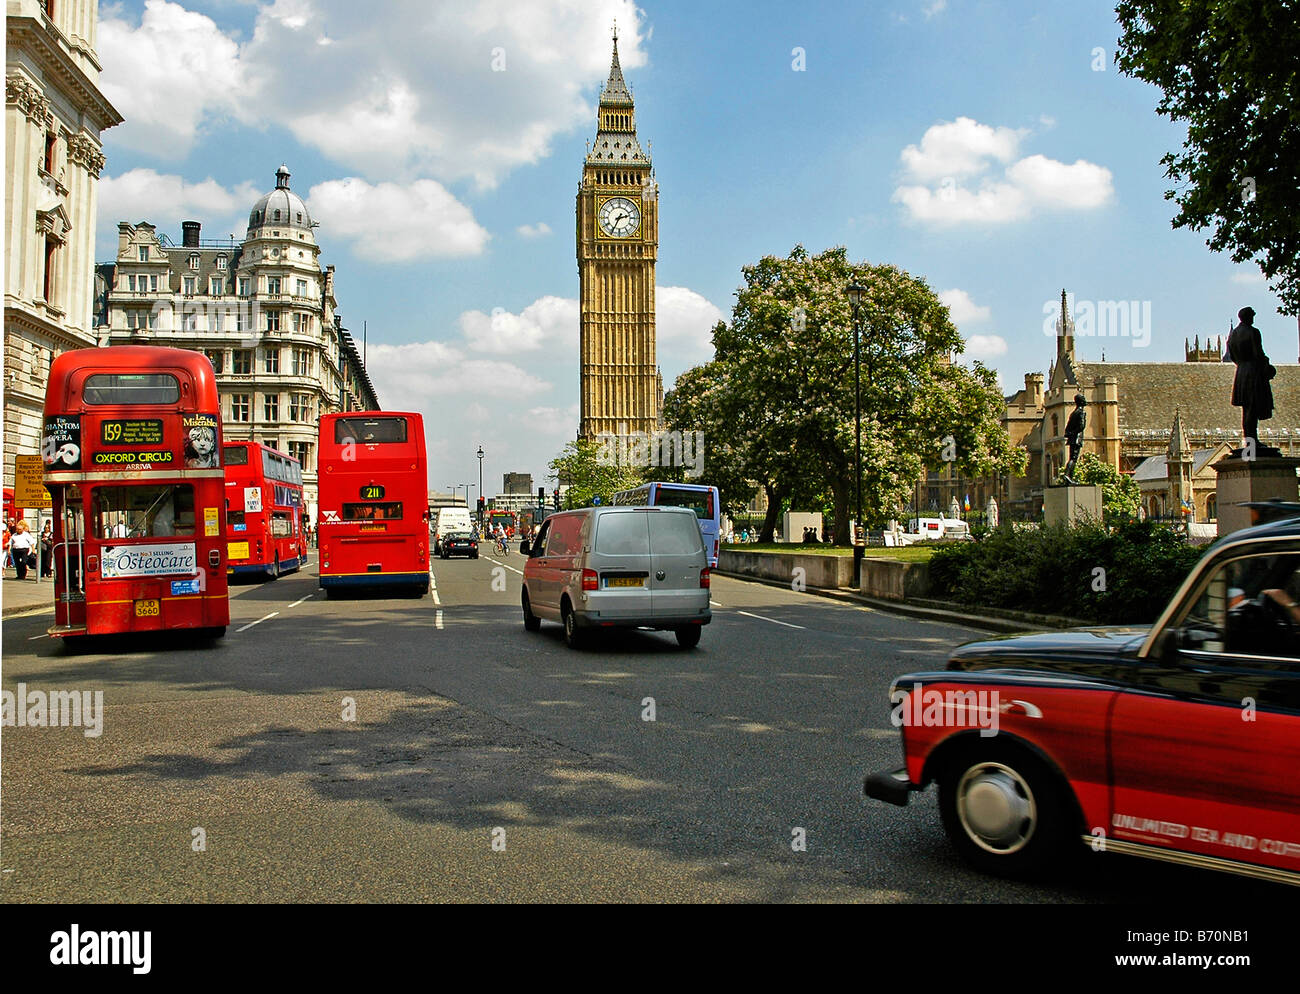 Red Double decker buses and cars in front of Big Ben London UK - Stock Image